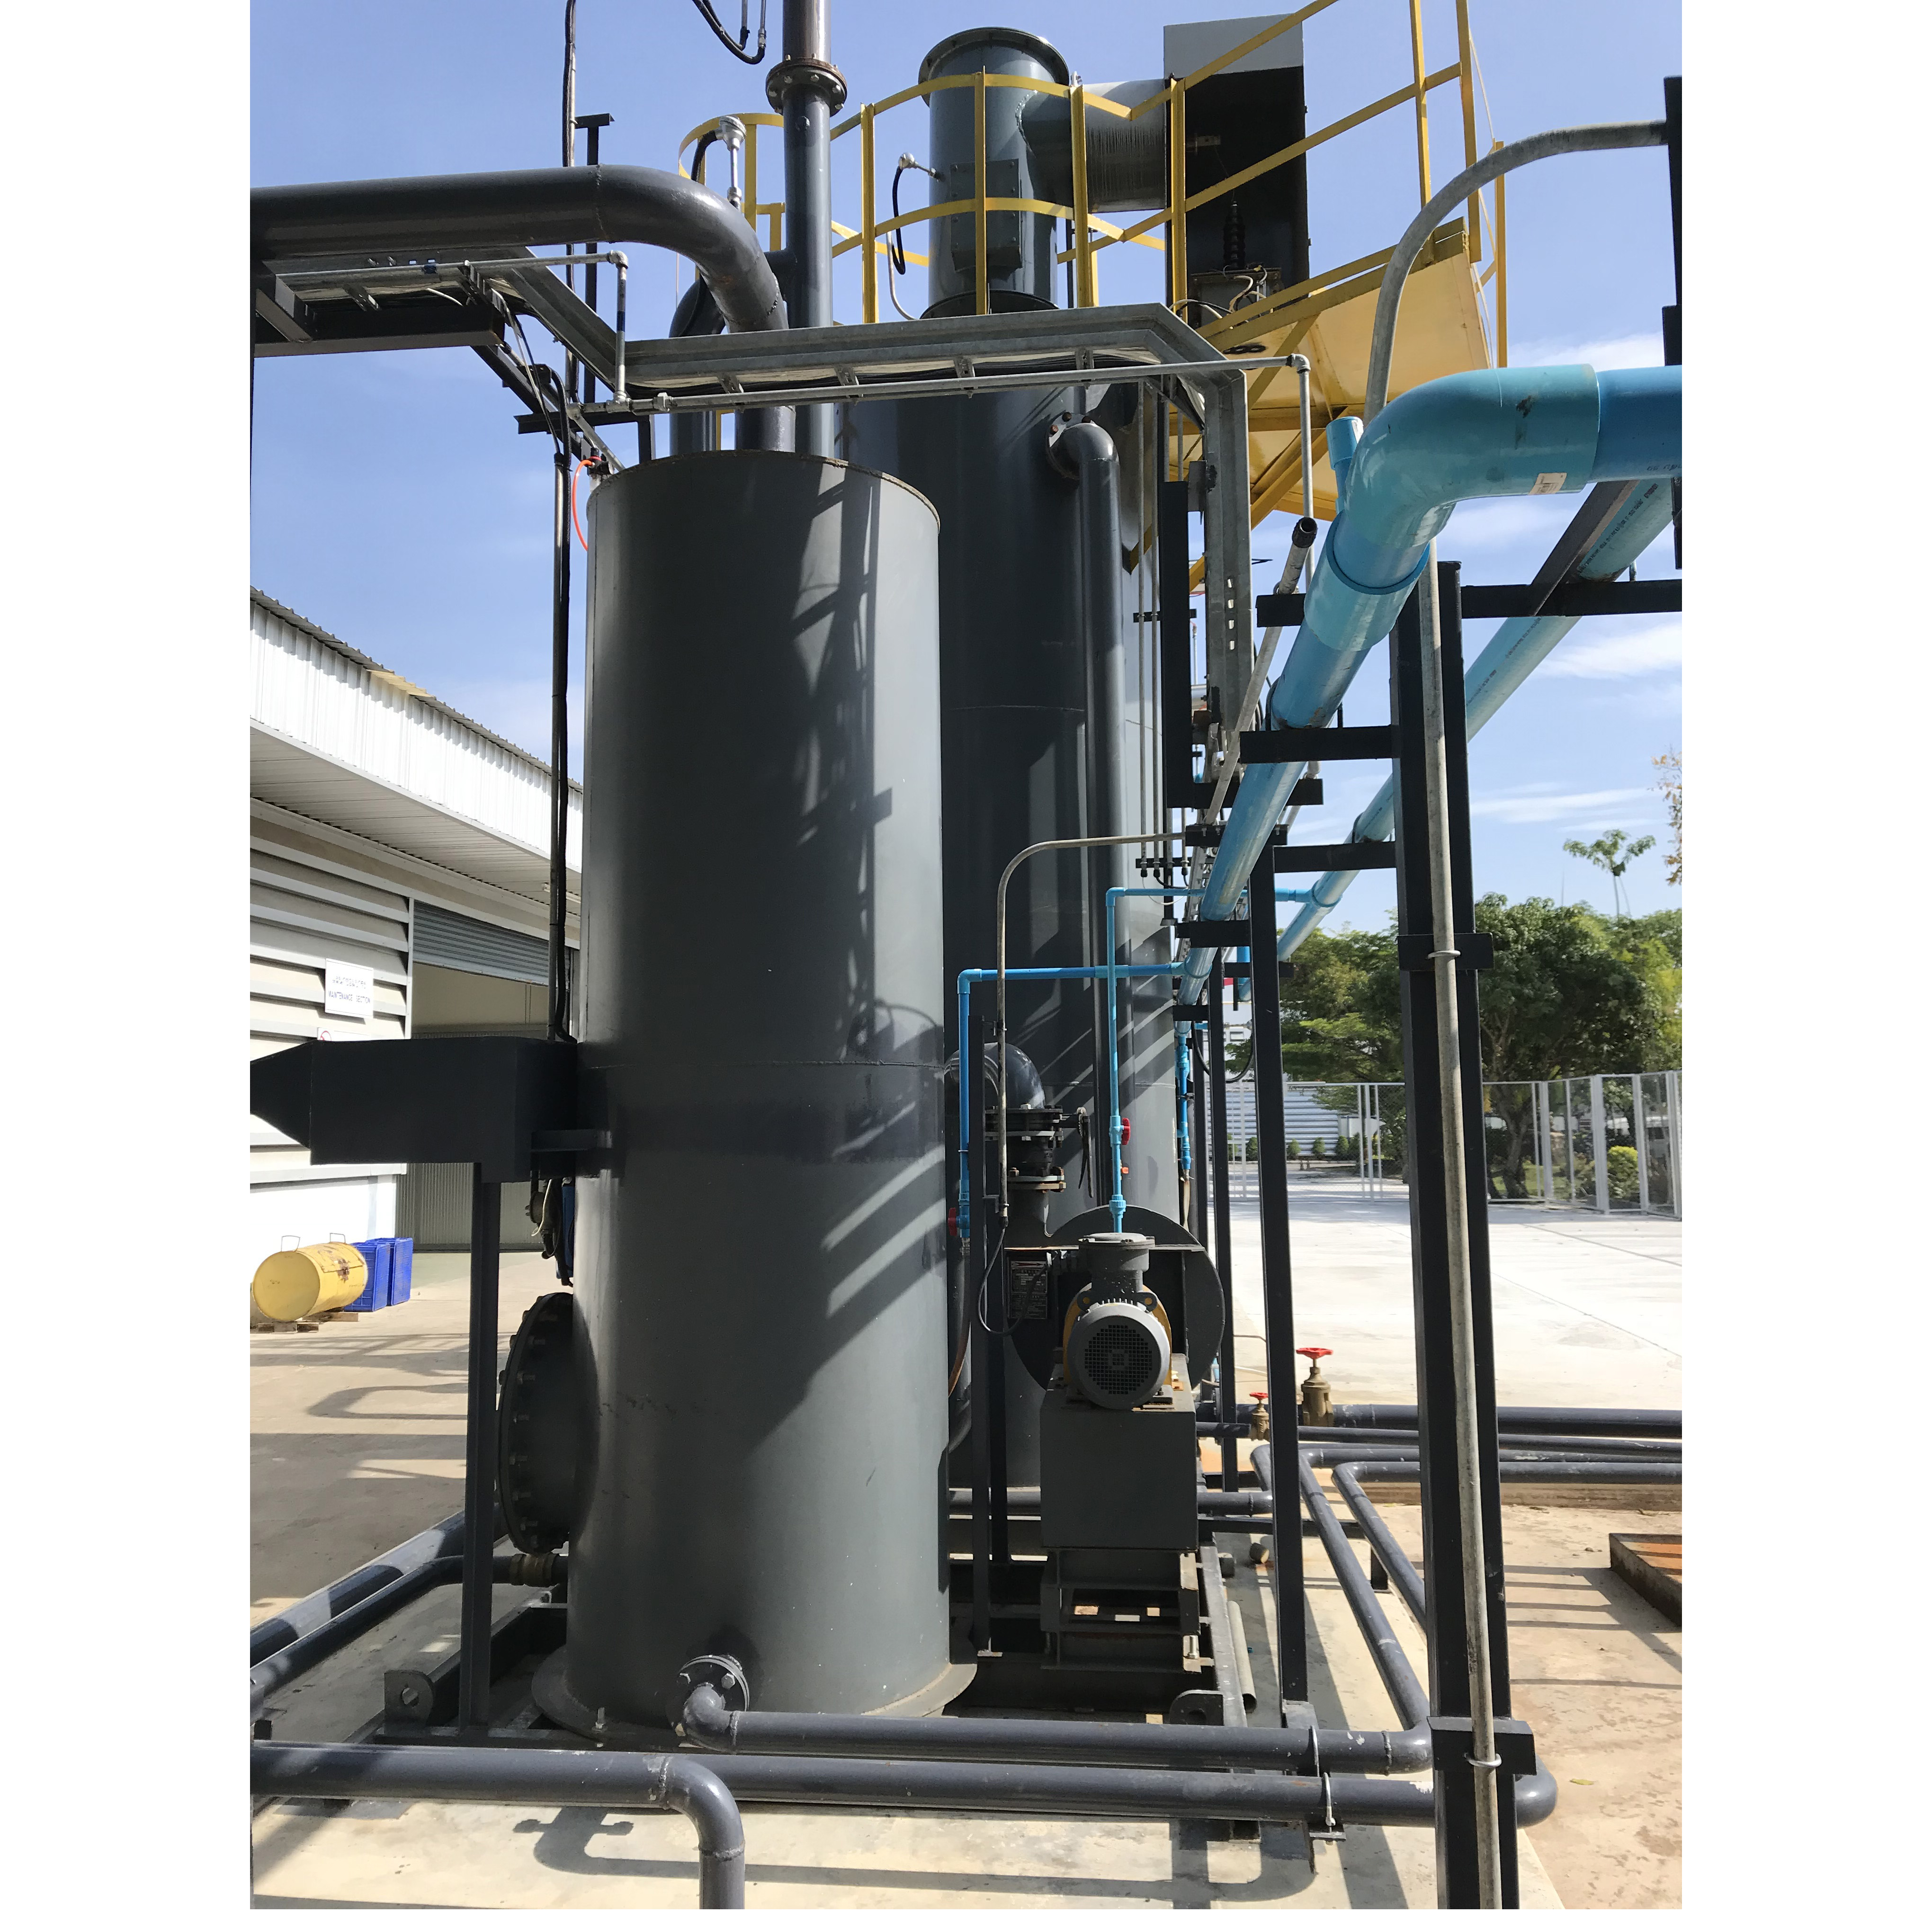 small scale 500kw biomass gasification power plant using Sewage sludge as fuel